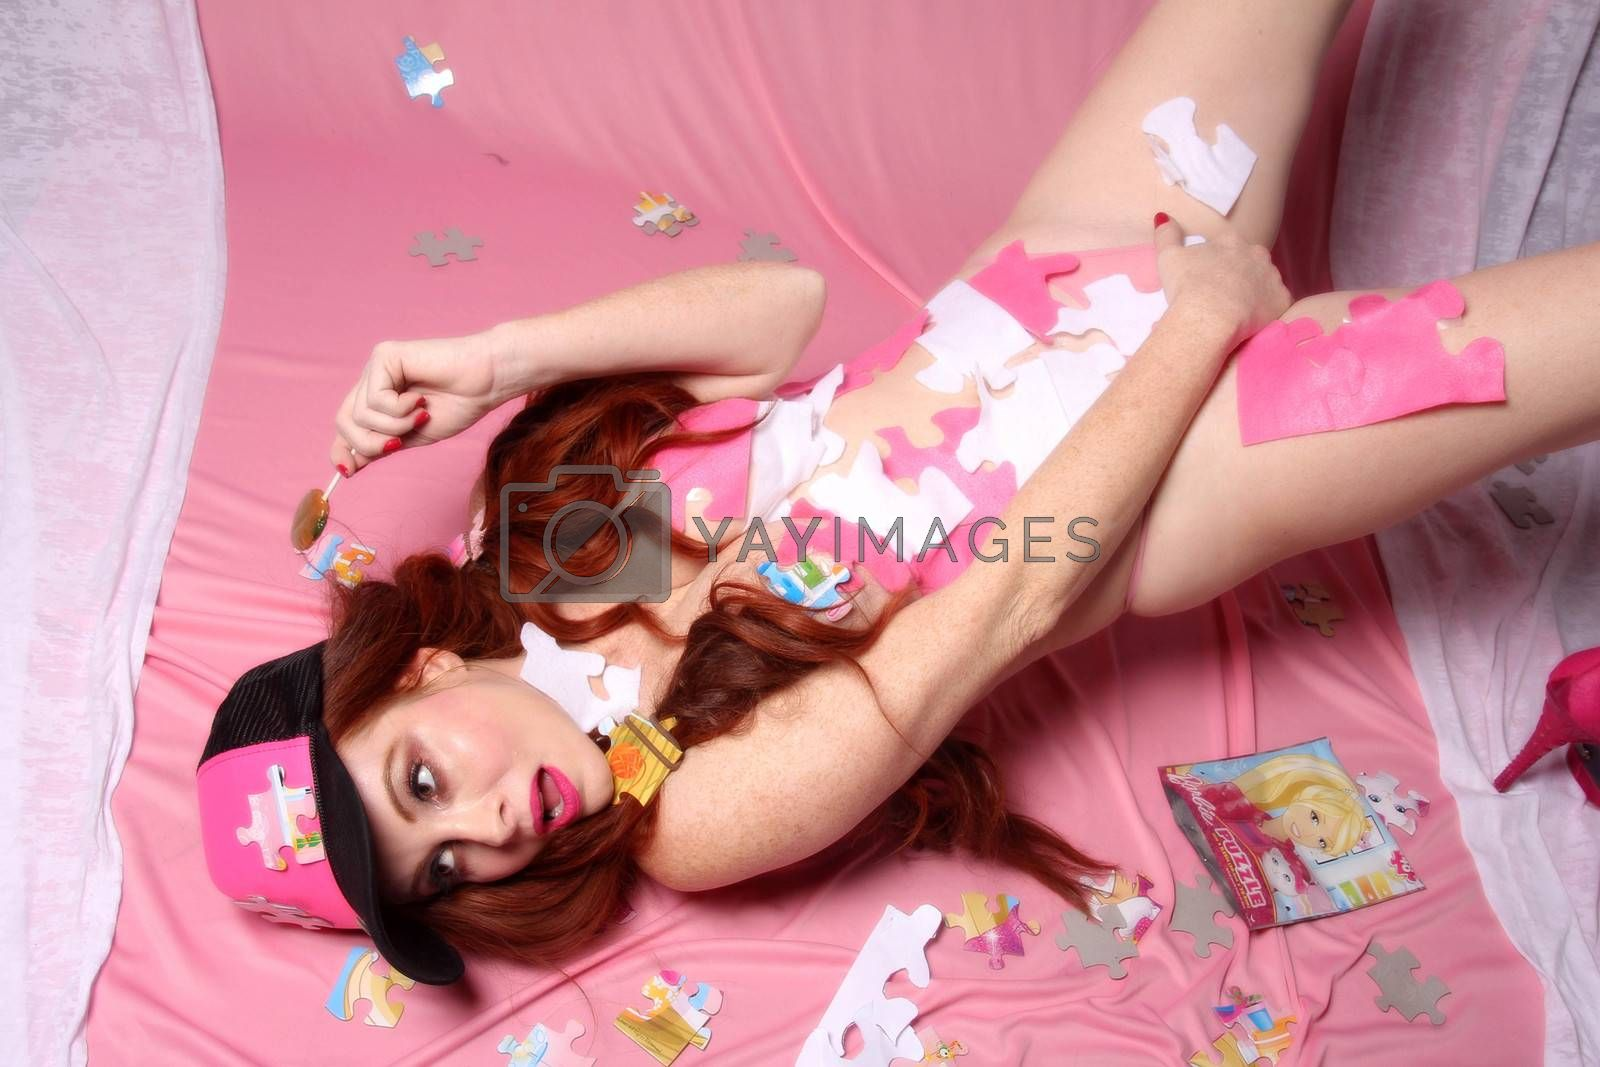 Royalty free image of Phoebe Price celebrates National Puzzle Day (Jan 29) in her own naked fashion, Los Angeles, CA 01-29-16/ImageCollect by ImageCollect